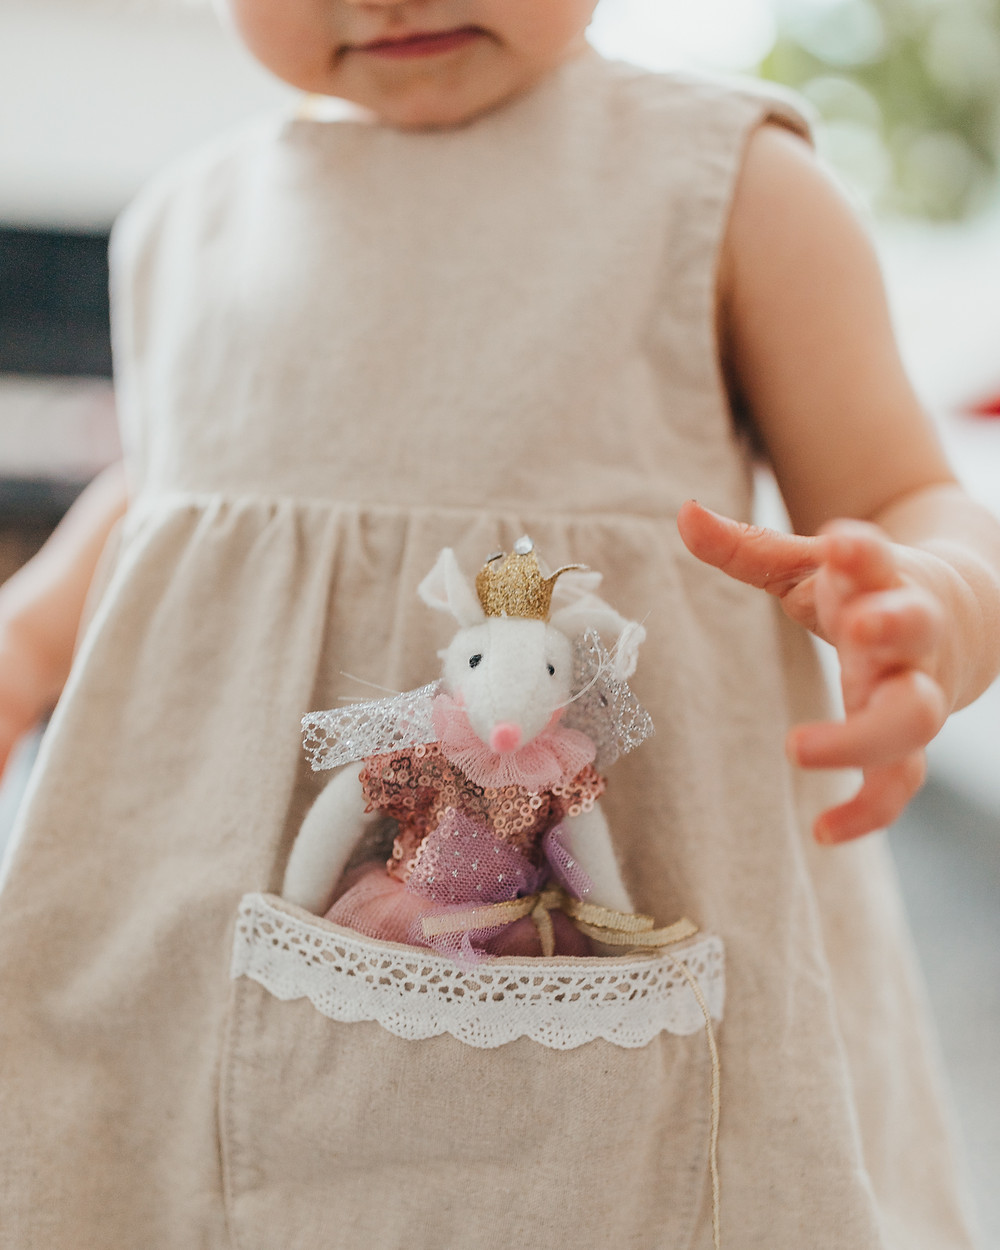 A baby girl at christmas time playing with a glitter mouse Christmas decoration in her pocket.